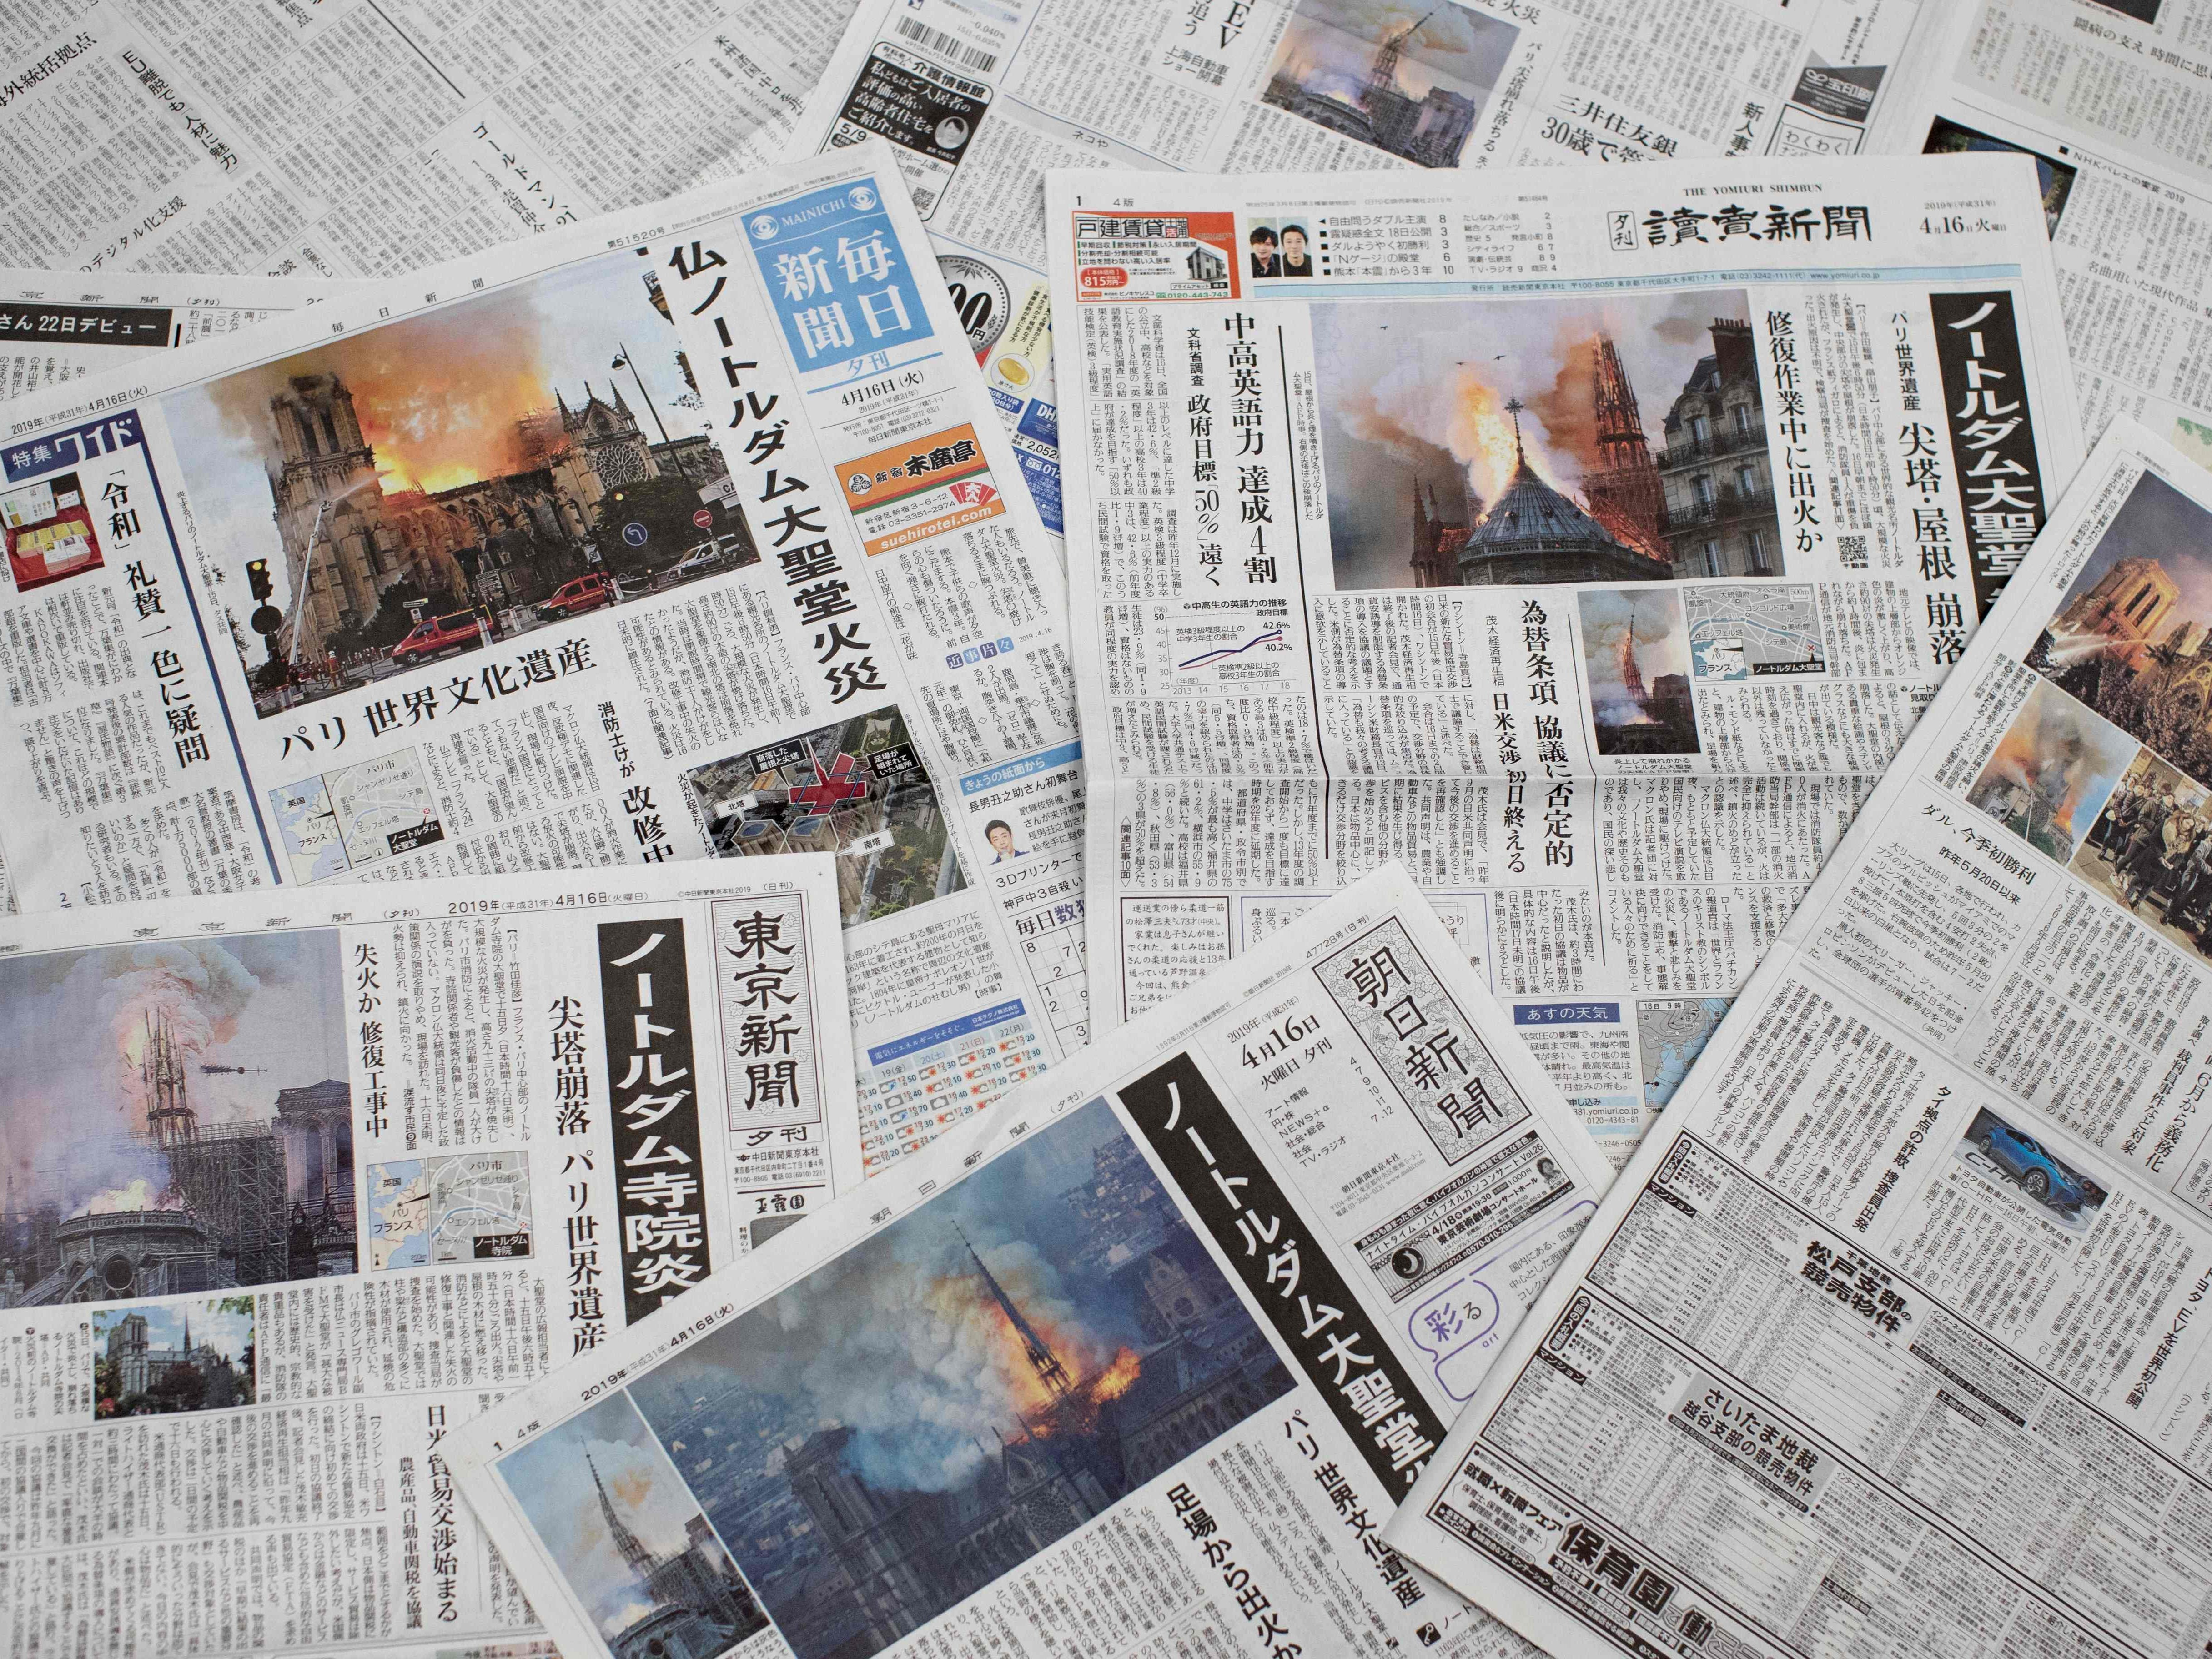 Japanese daily newspapers with front page coverage of the Notre-Dame Cathedral fire in Paris.